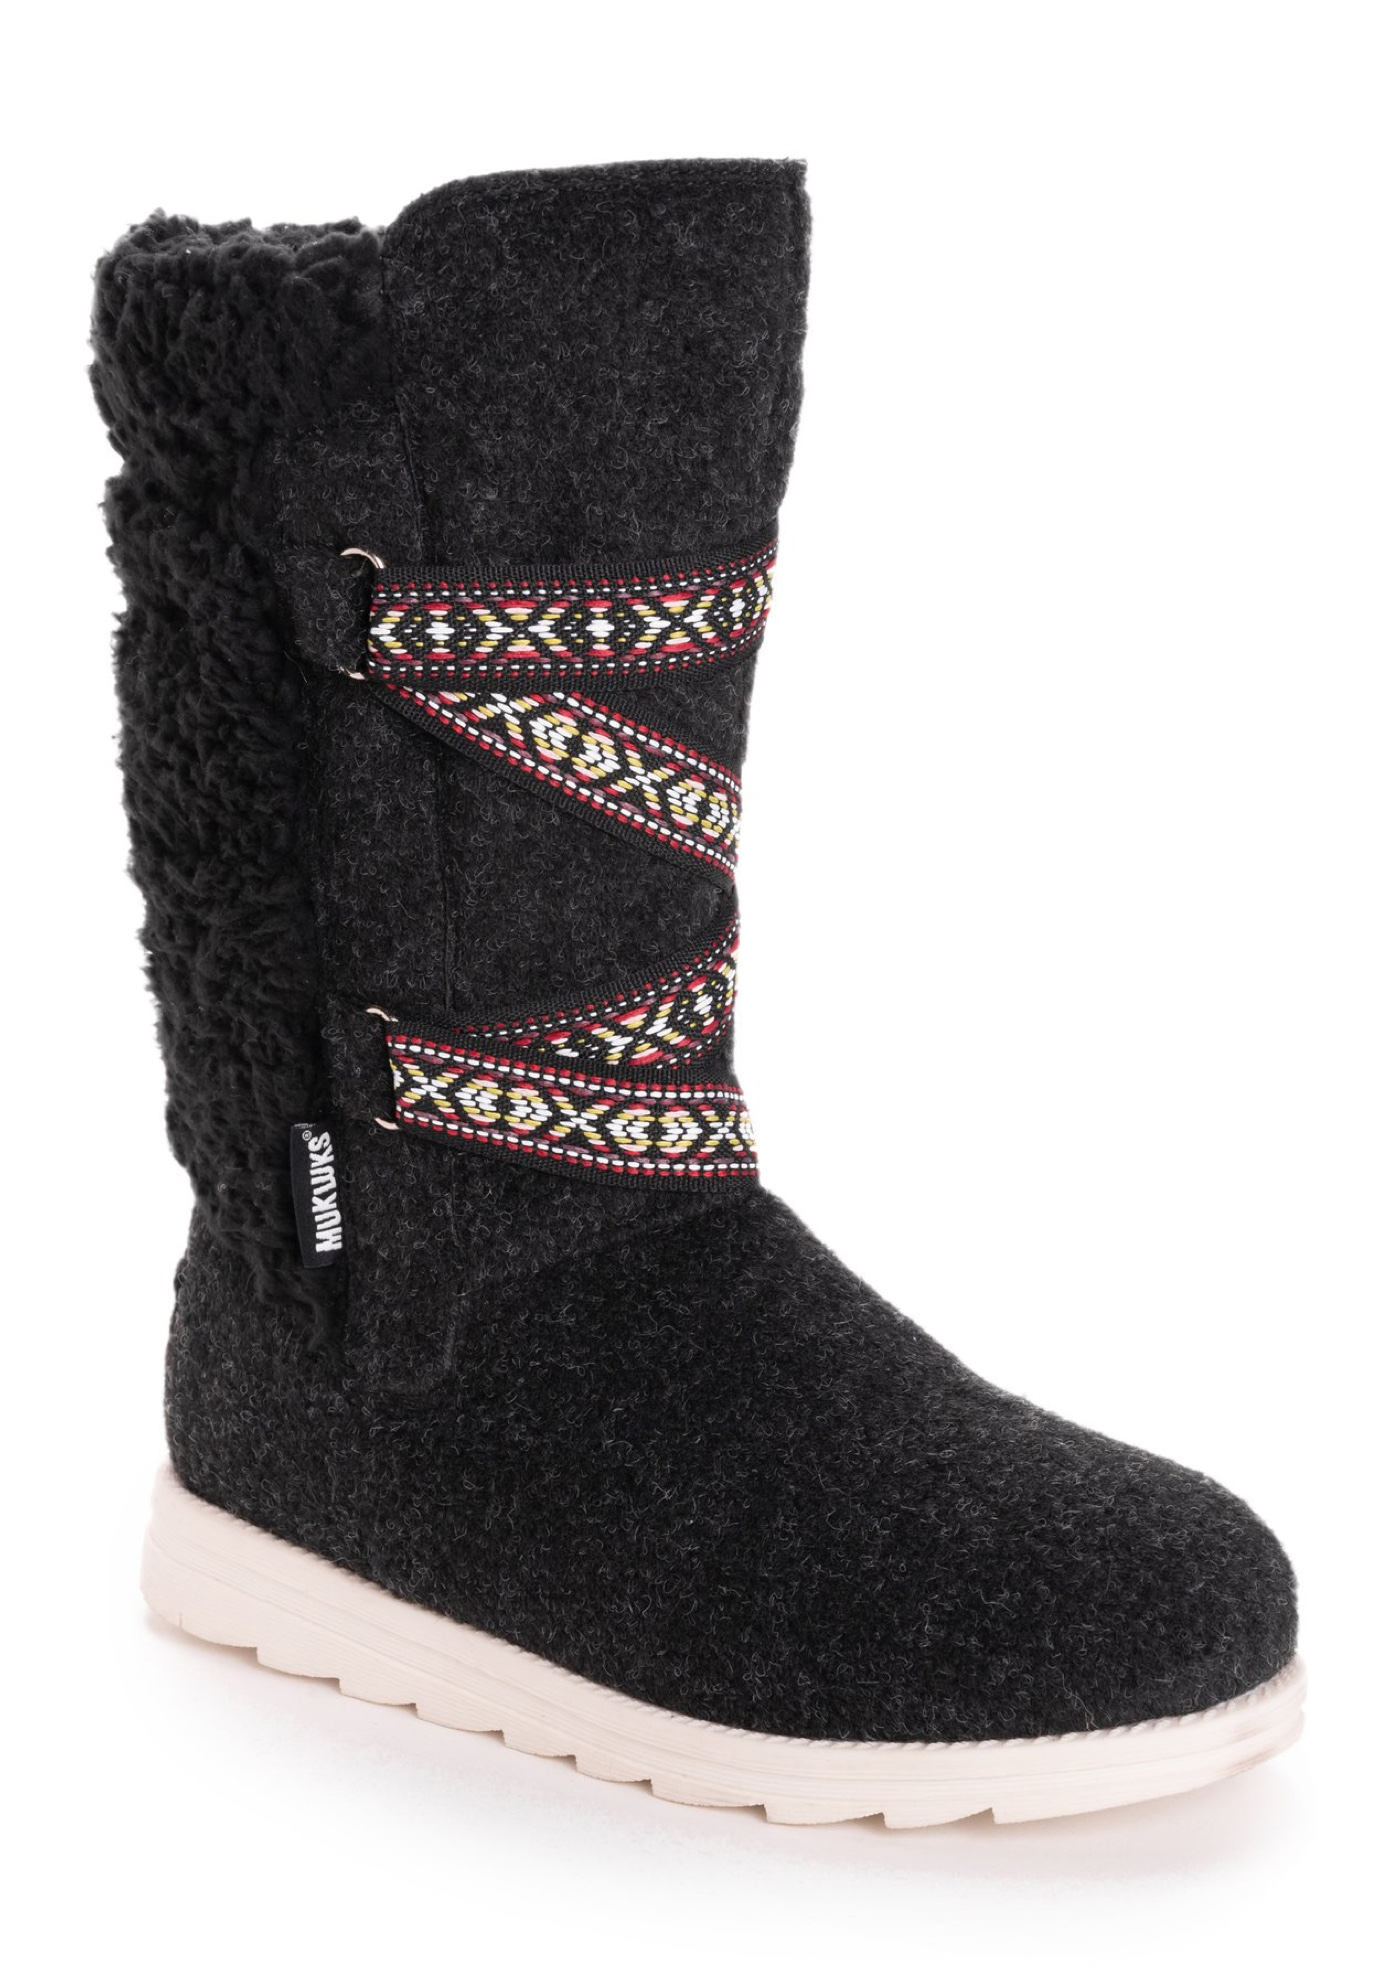 Tally Boot,